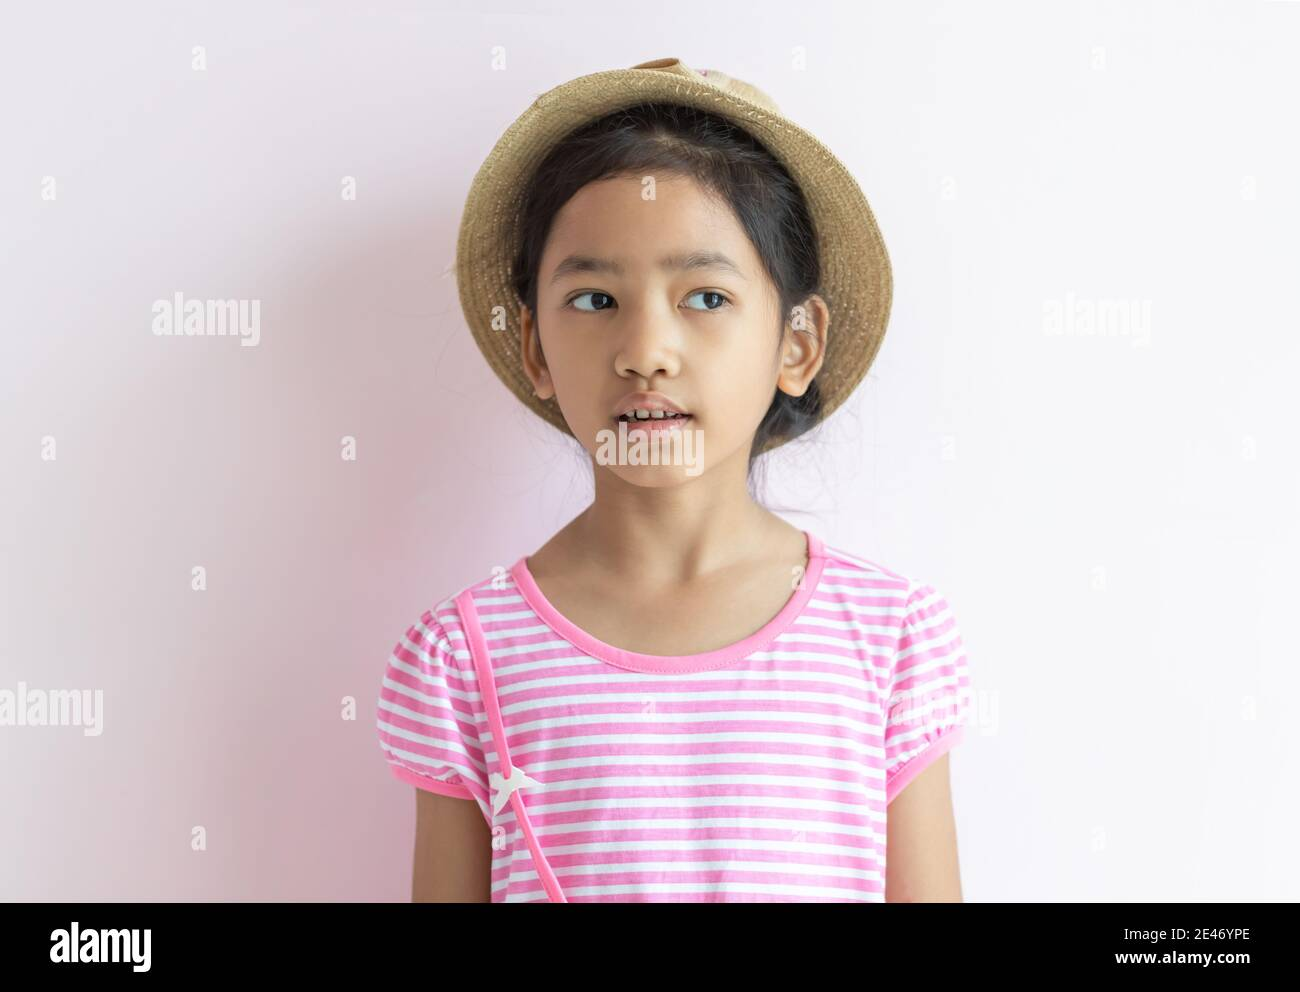 Portrait of an Asian kid wearing a pink and white striped dress. The girl wore a hat and looking to her side. Stock Photo